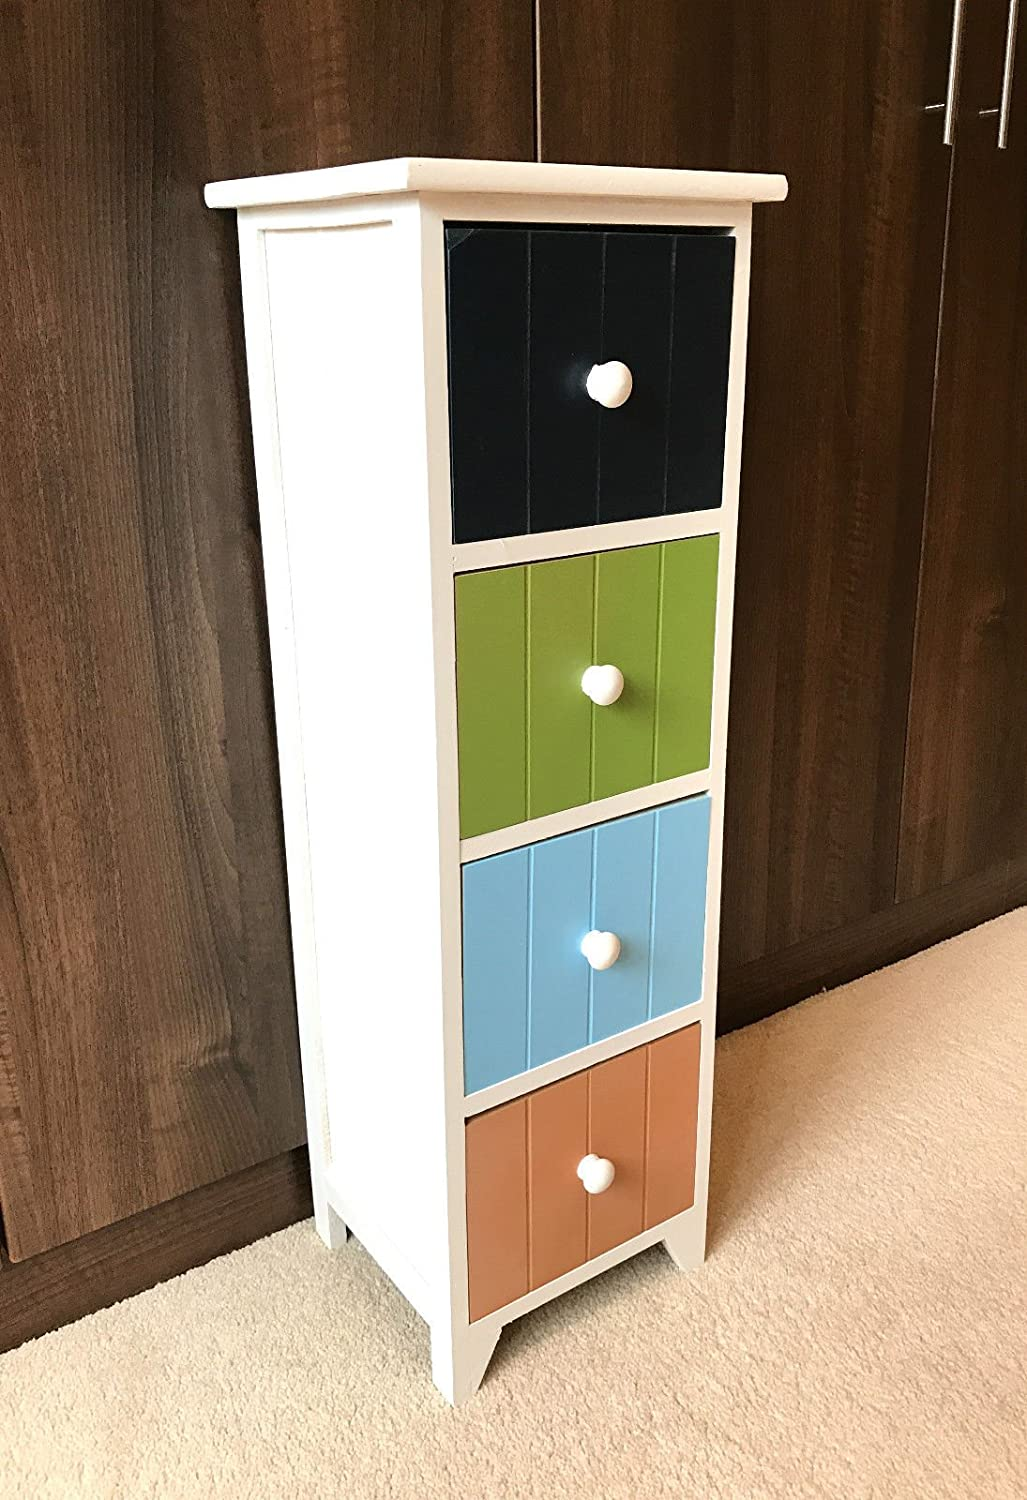 New Childrens Bedroom Furniture Chest of Drawers Kids Nursery Retro Storage Unit Home Delights